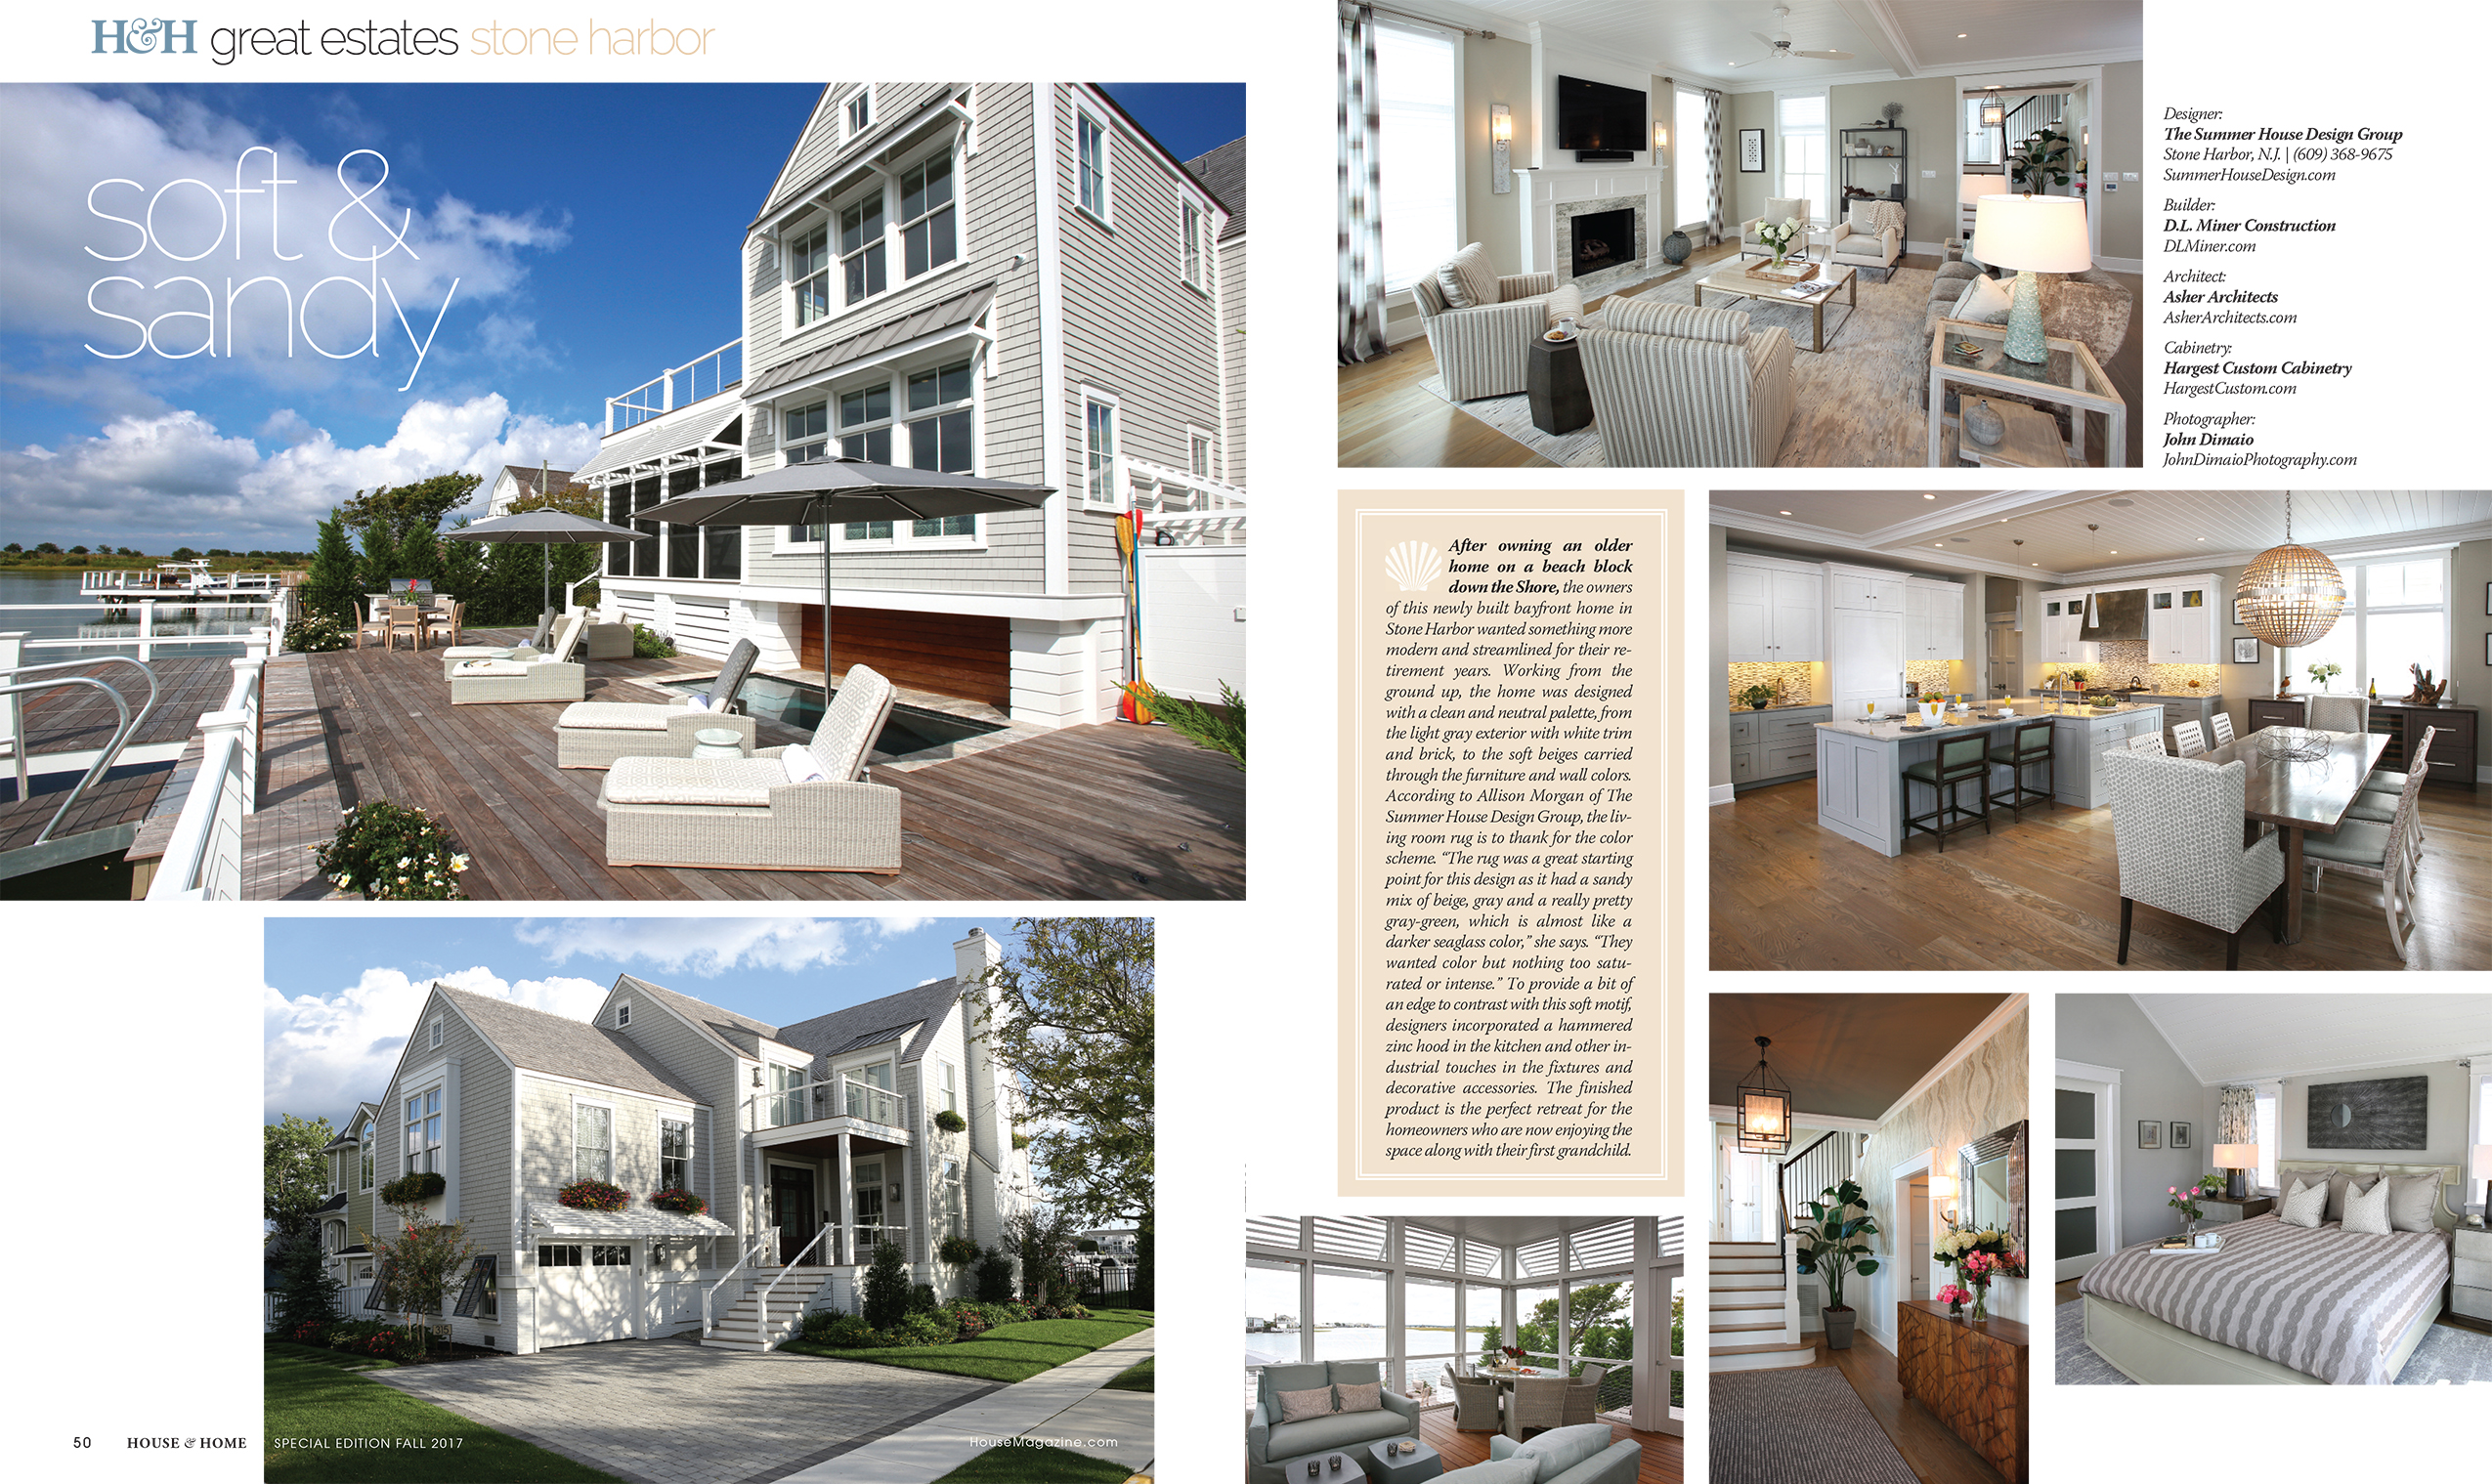 Great Estates Issue in House and Home | D. L. Miner Construction